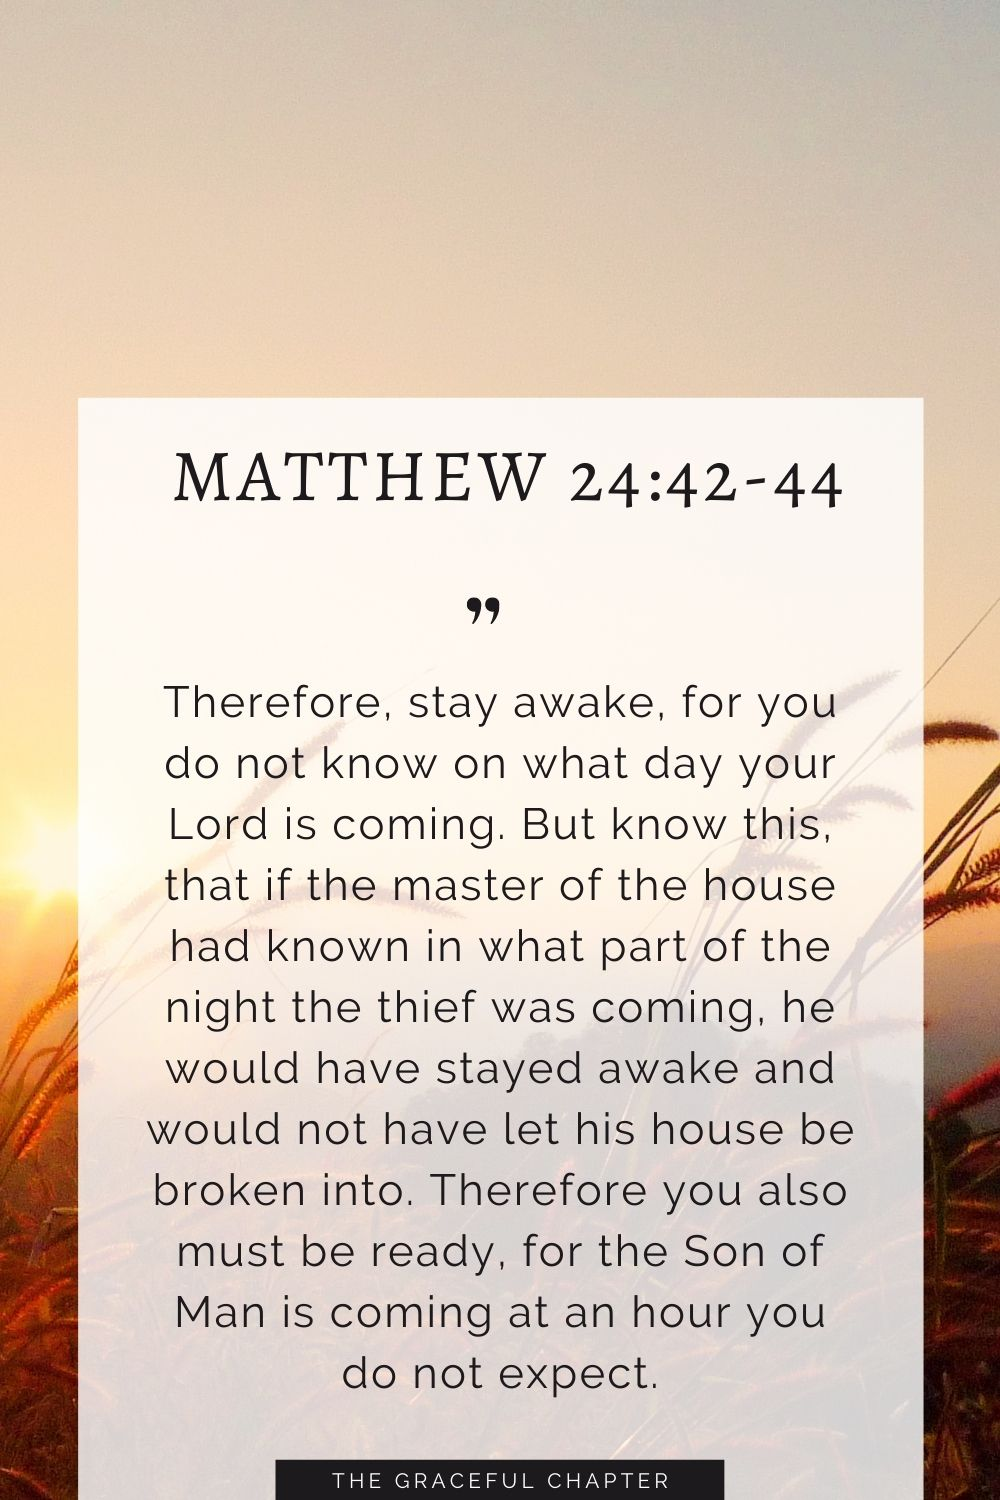 Therefore, stay awake, for you do not know on what day your Lord is coming. But know this, that if the master of the house had known in what part of the night the thief was coming, he would have stayed awake and would not have let his house be broken into. Therefore you also must be ready, for the Son of Man is coming at an hour you do not expect. Matthew 24:42-44